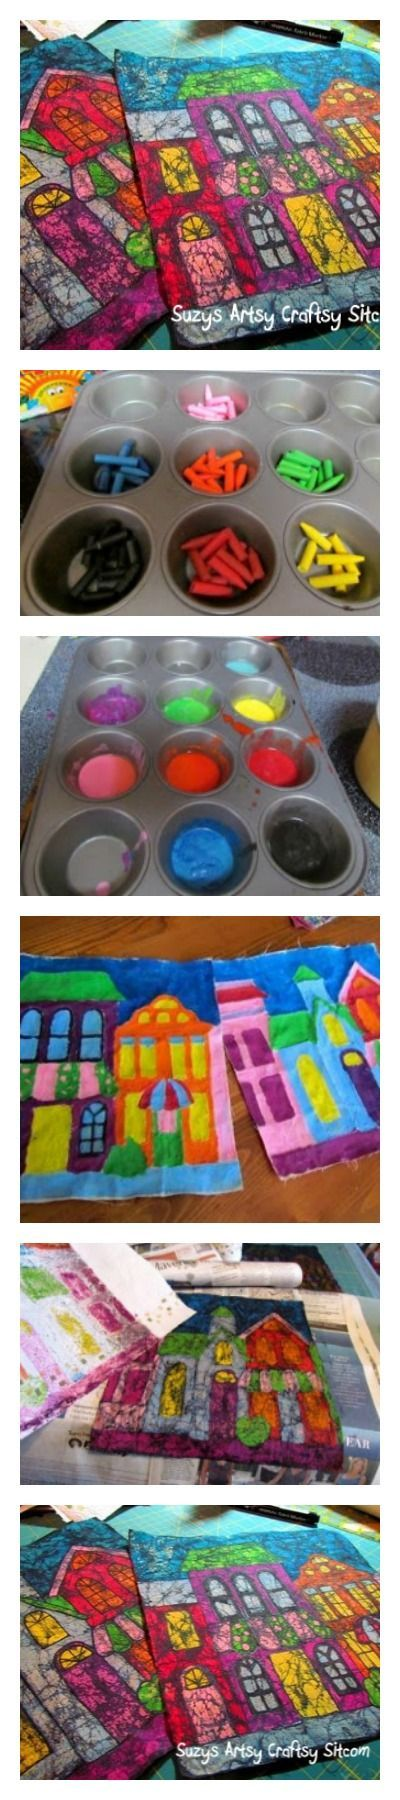 Create colorful batik fabric using melted crayons.  Easy-ish tutorial (some messiness will be involved)